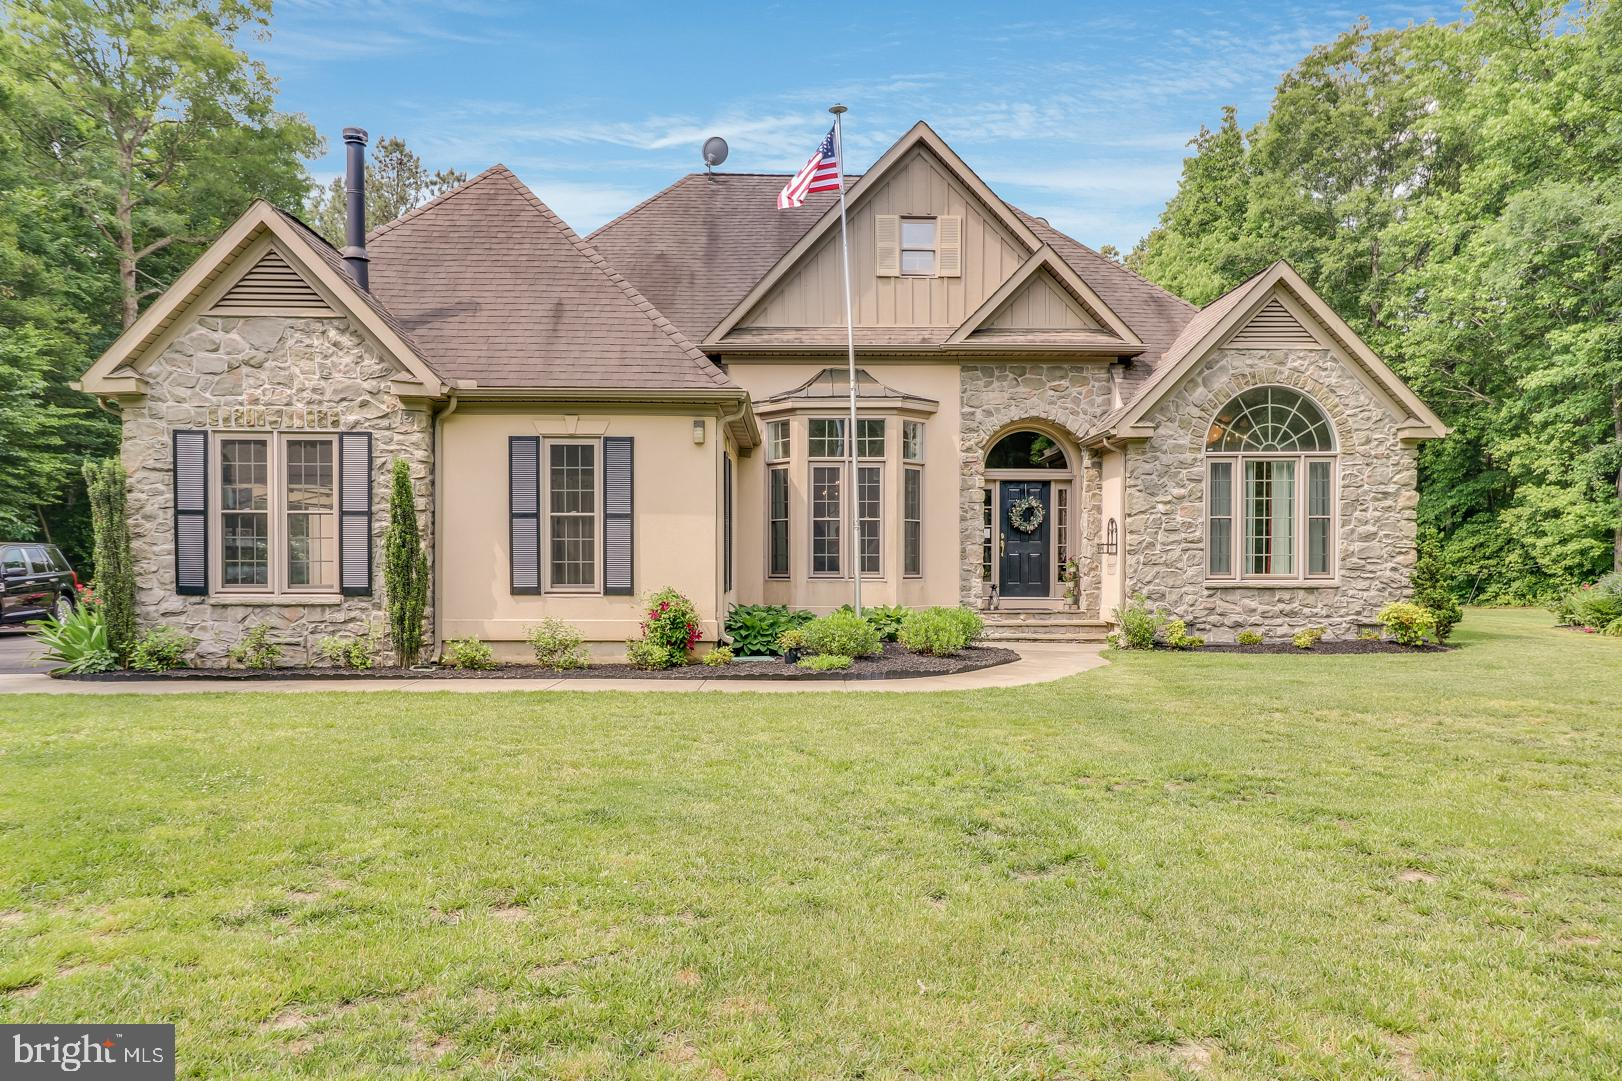 Beautifully designed custom ranch on 14.4 maturely wooded acres! This gem has custom features throughout including crown moldings, archways, 11 foot ceilings, and a beautiful custom kitchen! Meticulous landscaping with irrigation and over an acre cleared for the home site! Detached 24'x36' pole building for your toys & hobbies, plus an oversized attached garage. In ground pool with new liner, gazebo, large patio, and deck! Newer heating system, newer granite counters, and so many custom features!